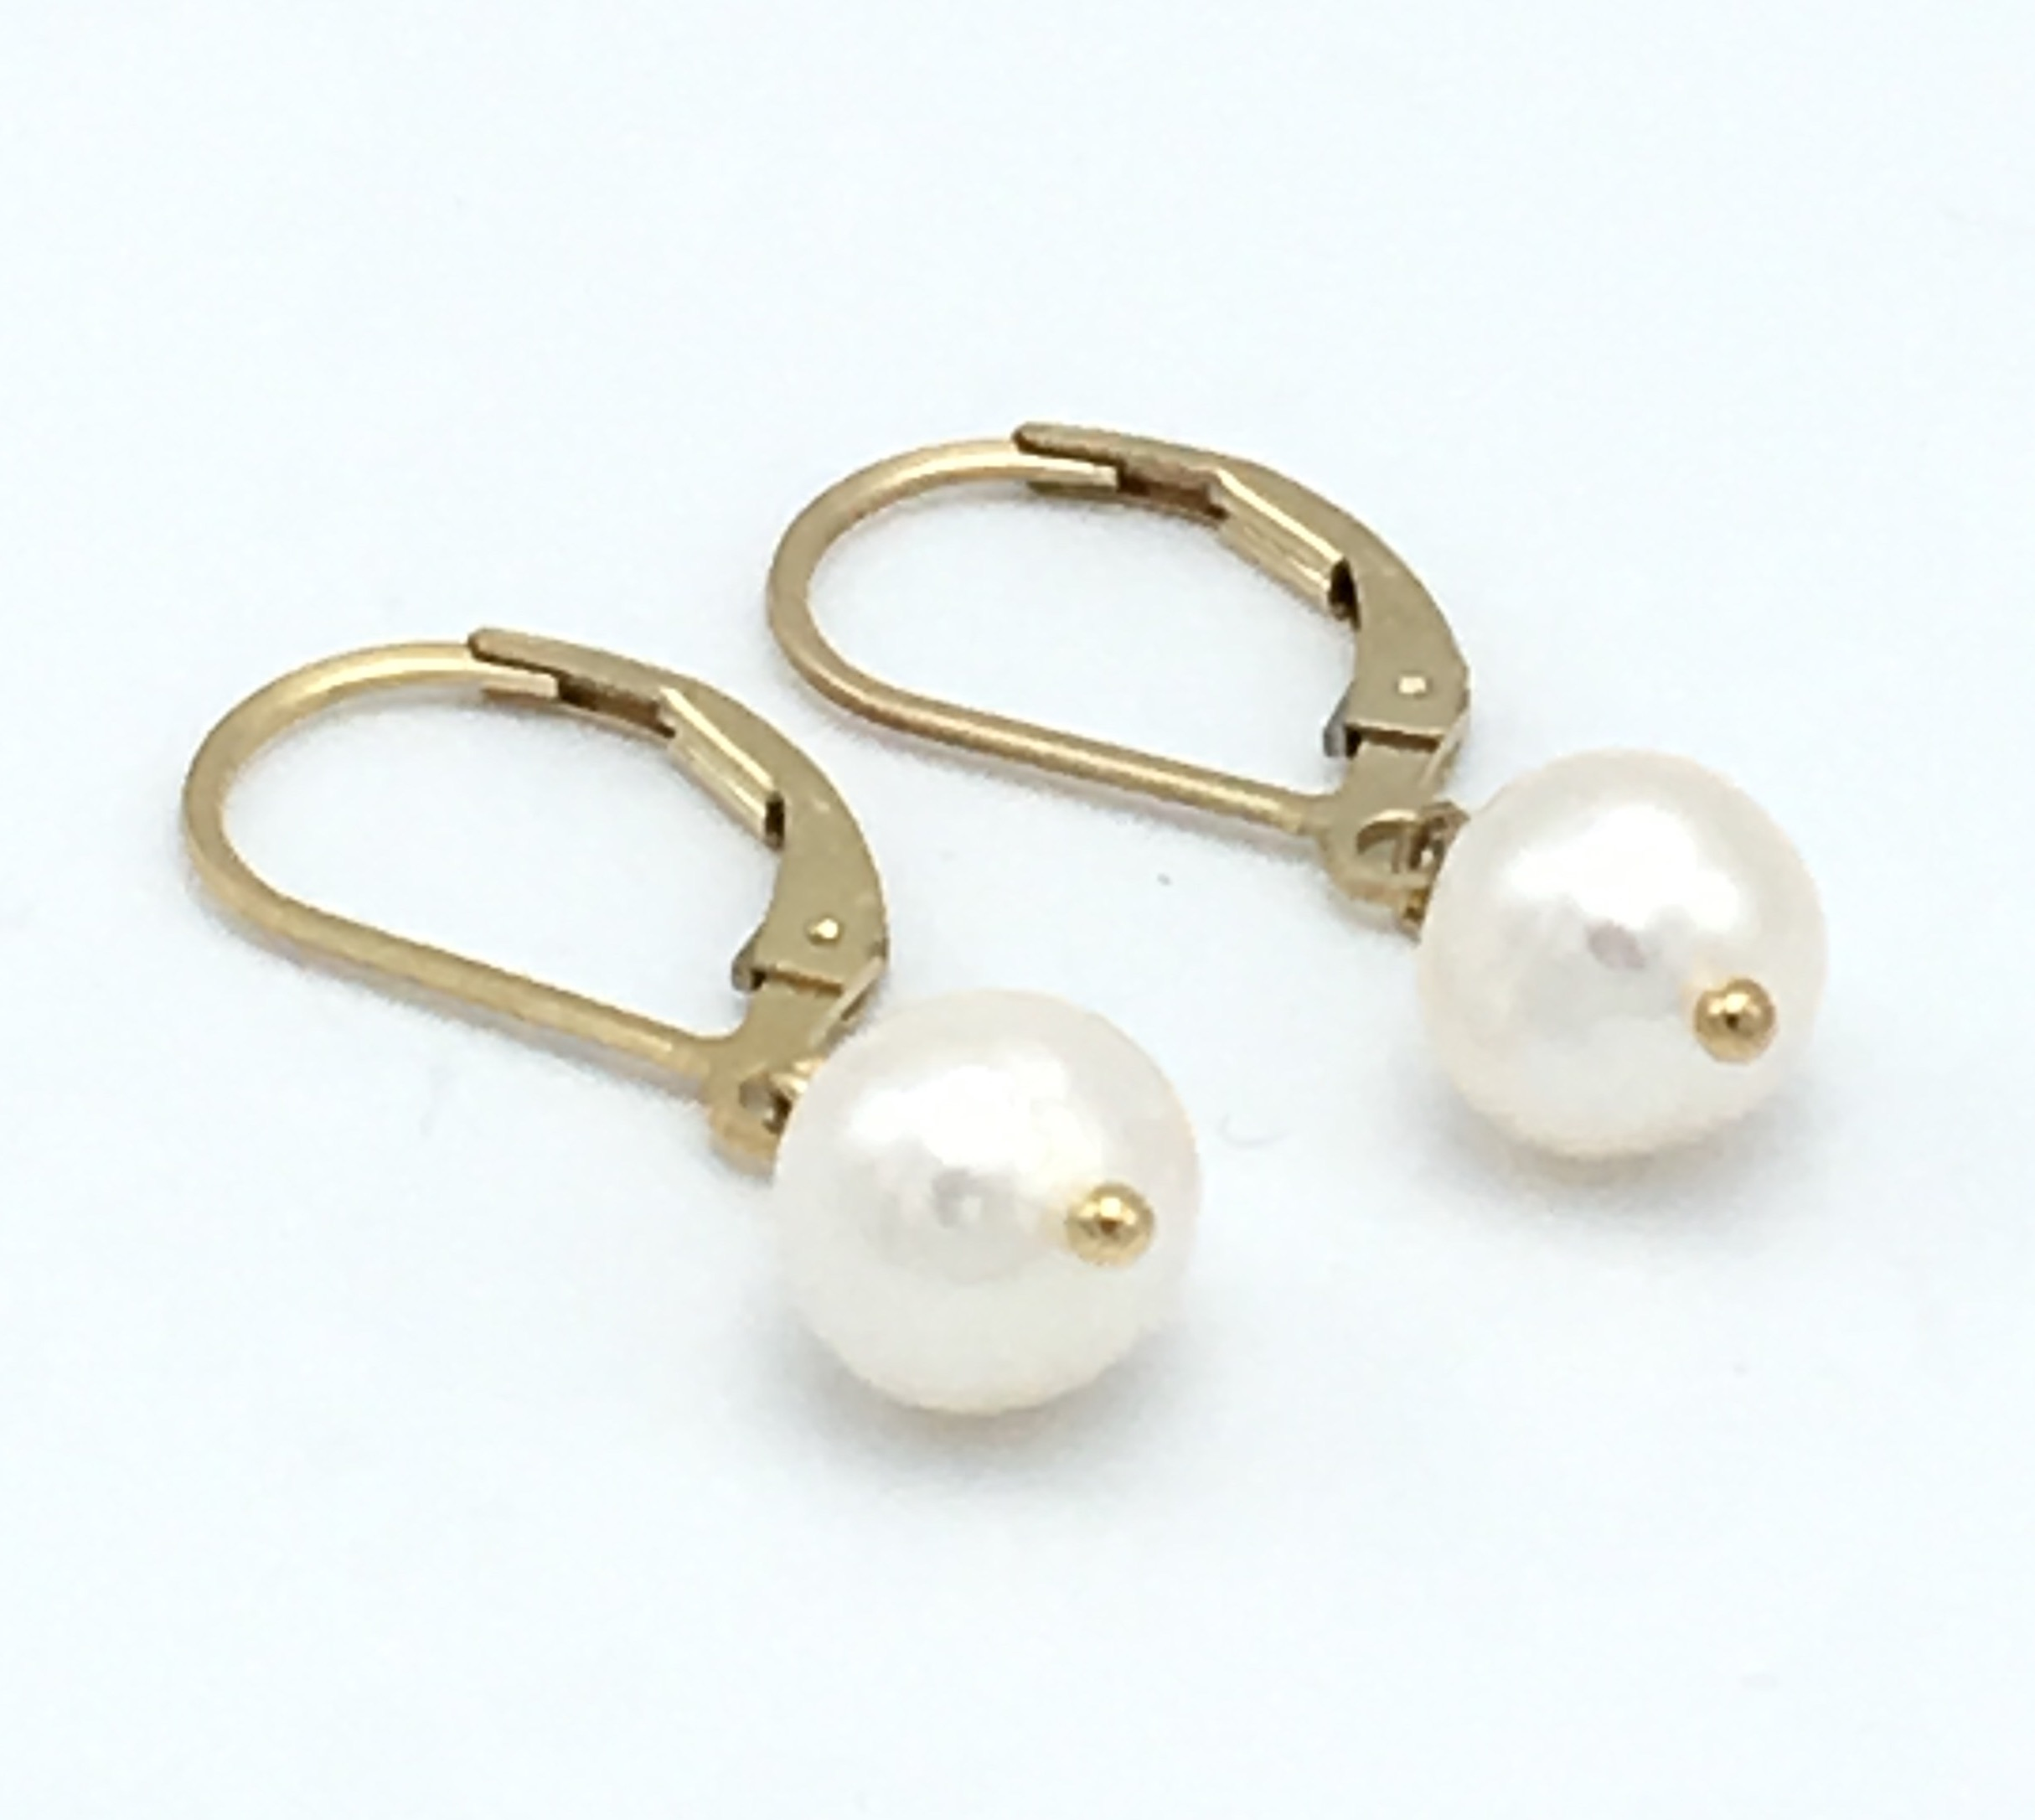 shop product giant polynesia pearls pearl pacific on pacificpearl collection black white rakuten baroque gold earrings